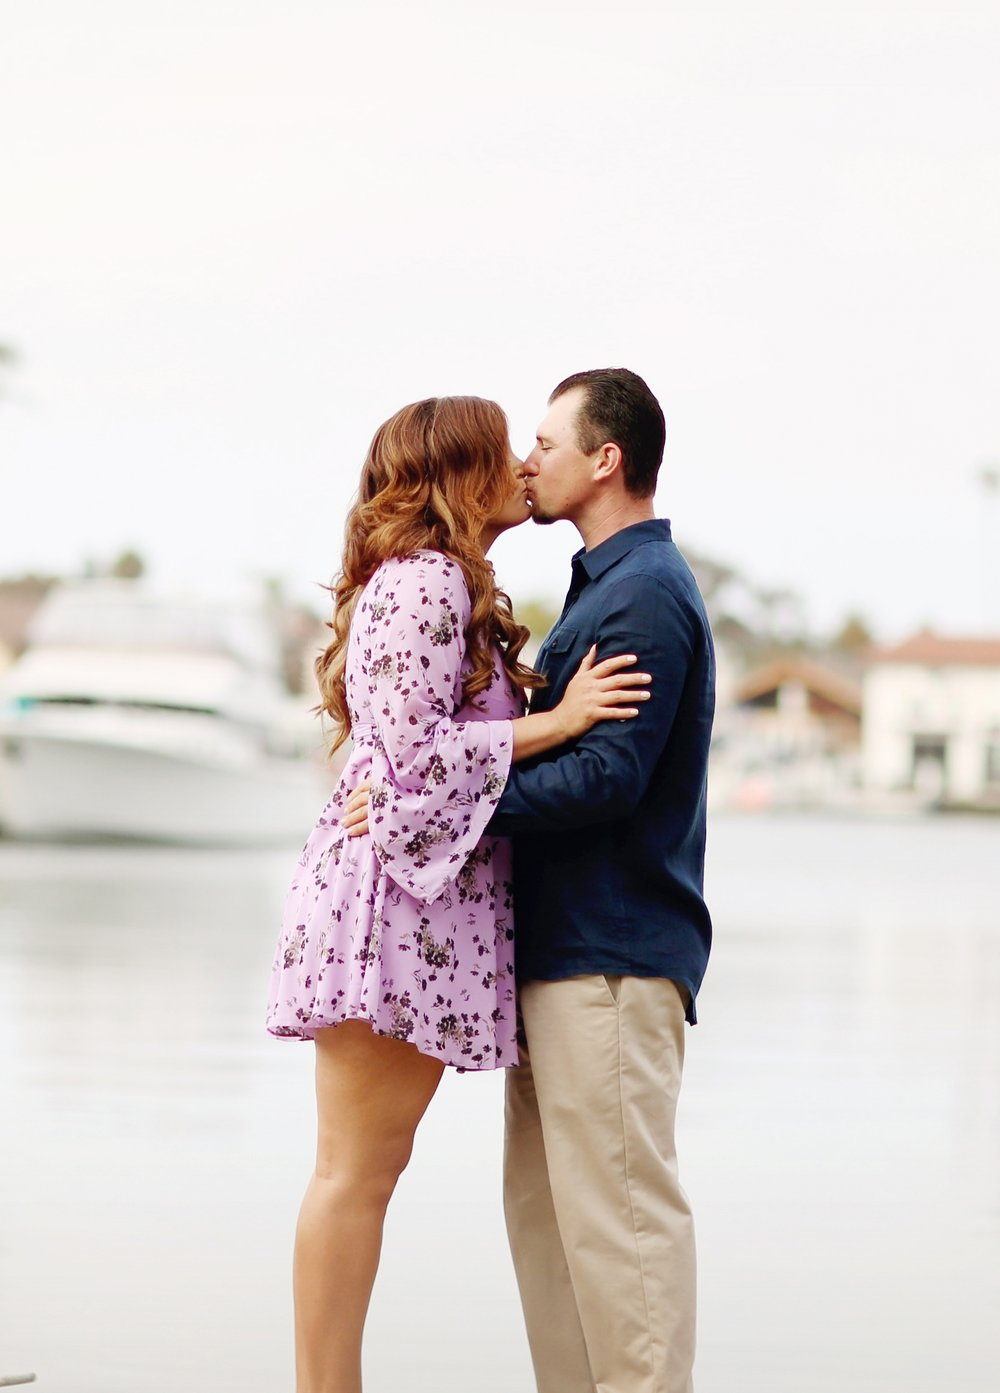 Boats, beach, engaged couple kissing in this beautiful beach portrait.